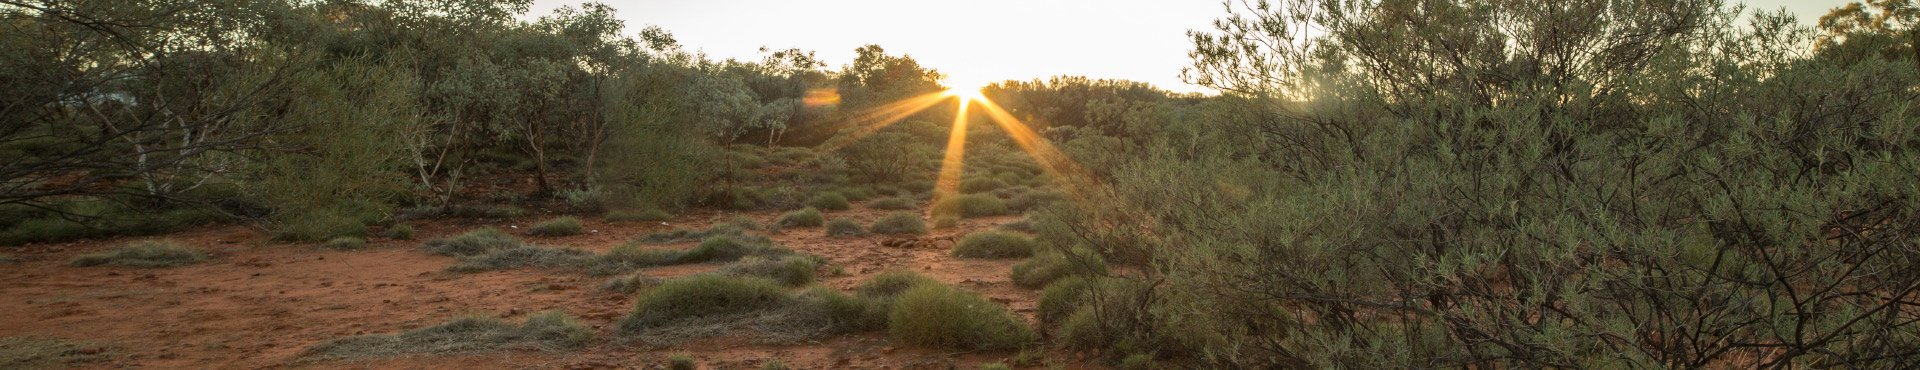 Shine Lawyers | Australian Outback | Shine Lawyers